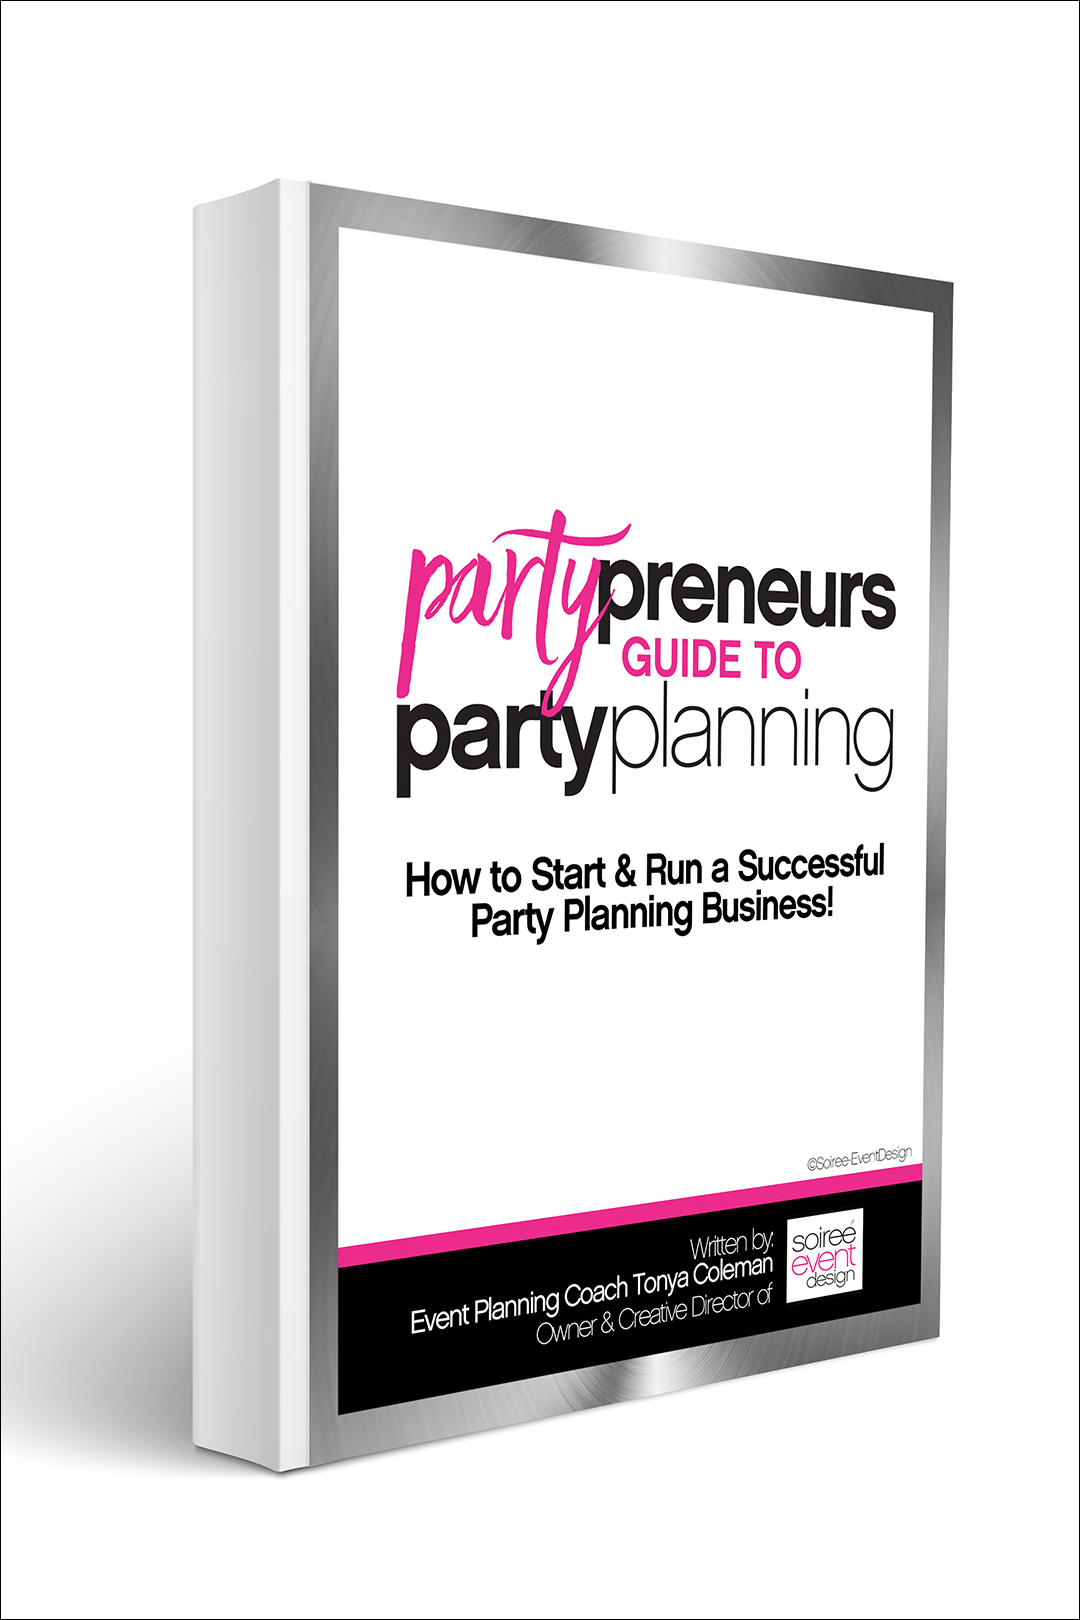 Partypreneur Guide to Party Planning